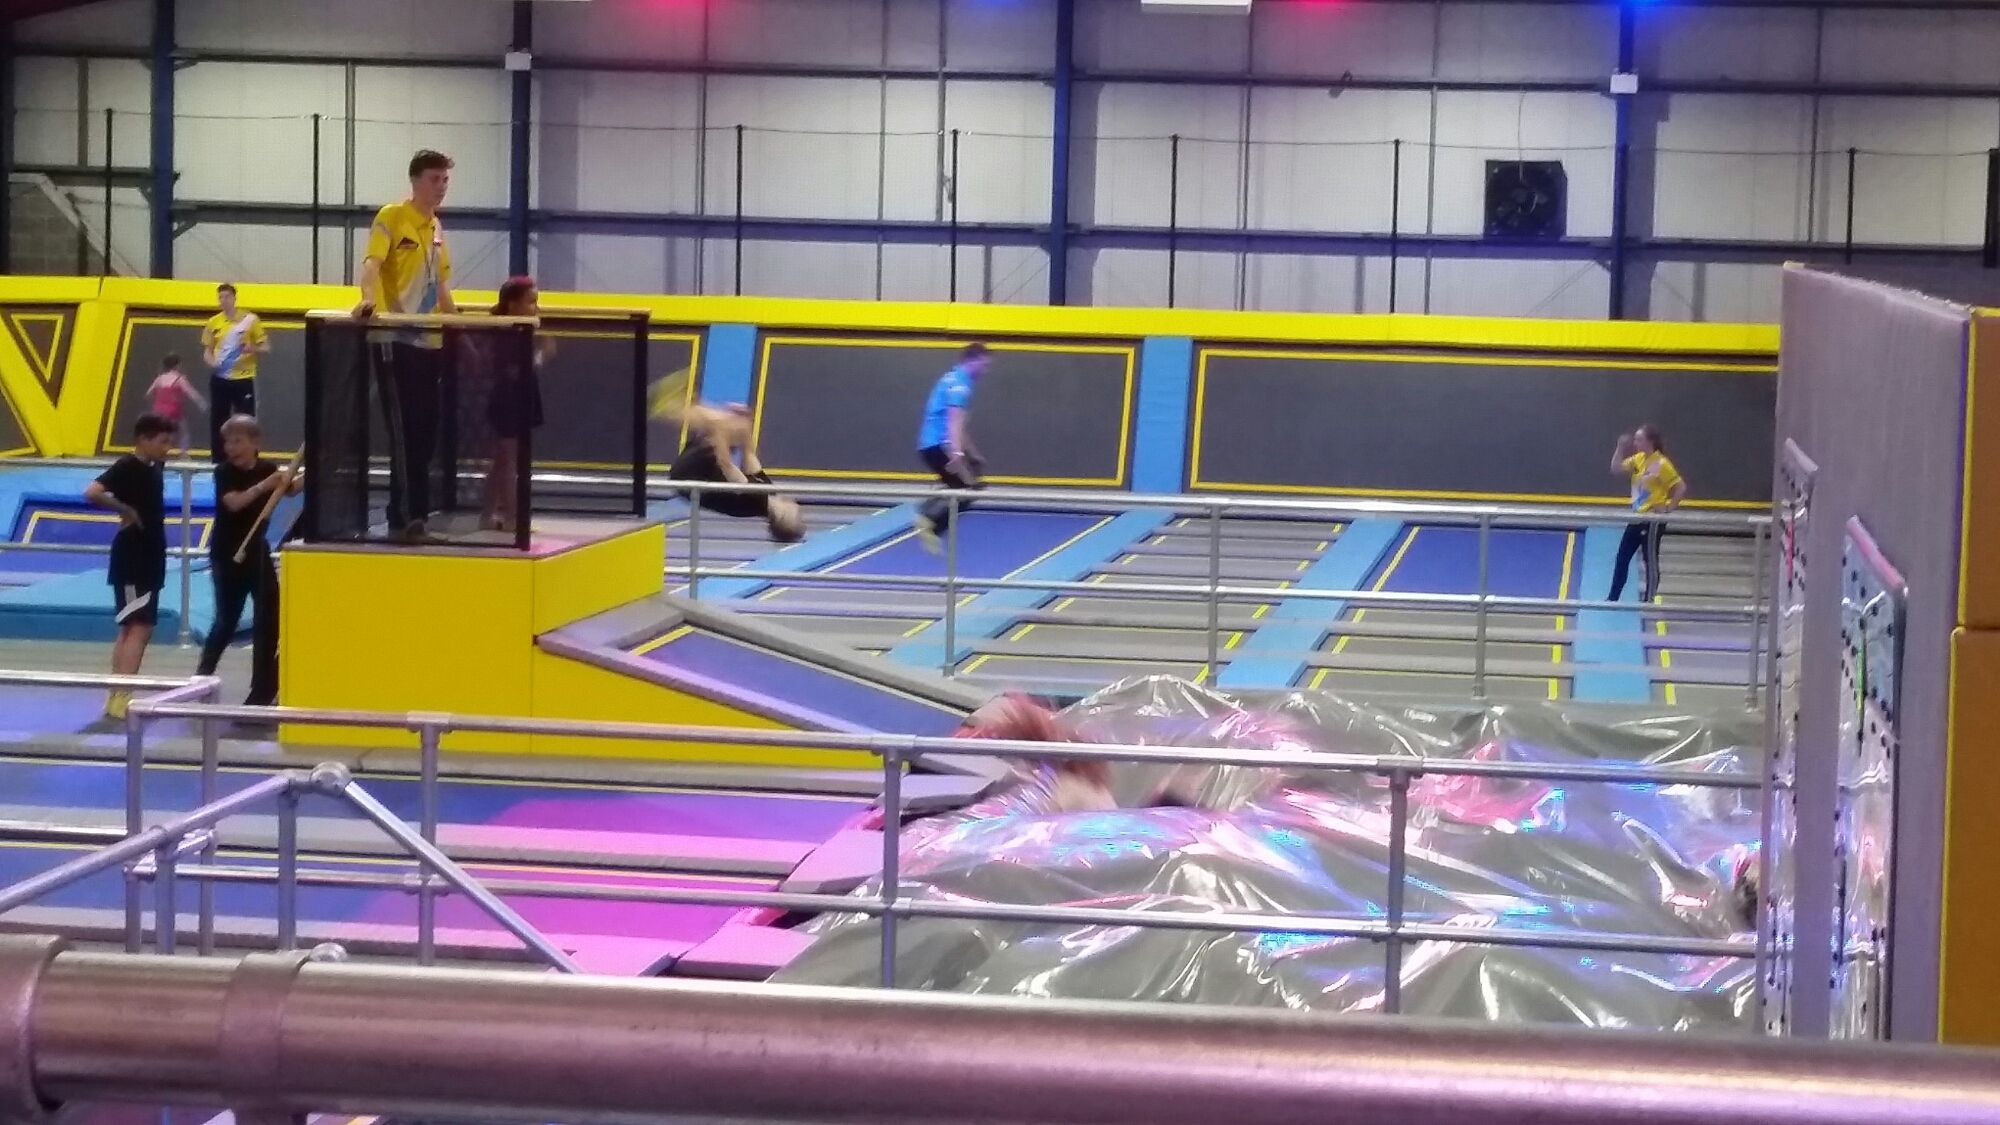 Oxygen free jumping manchester